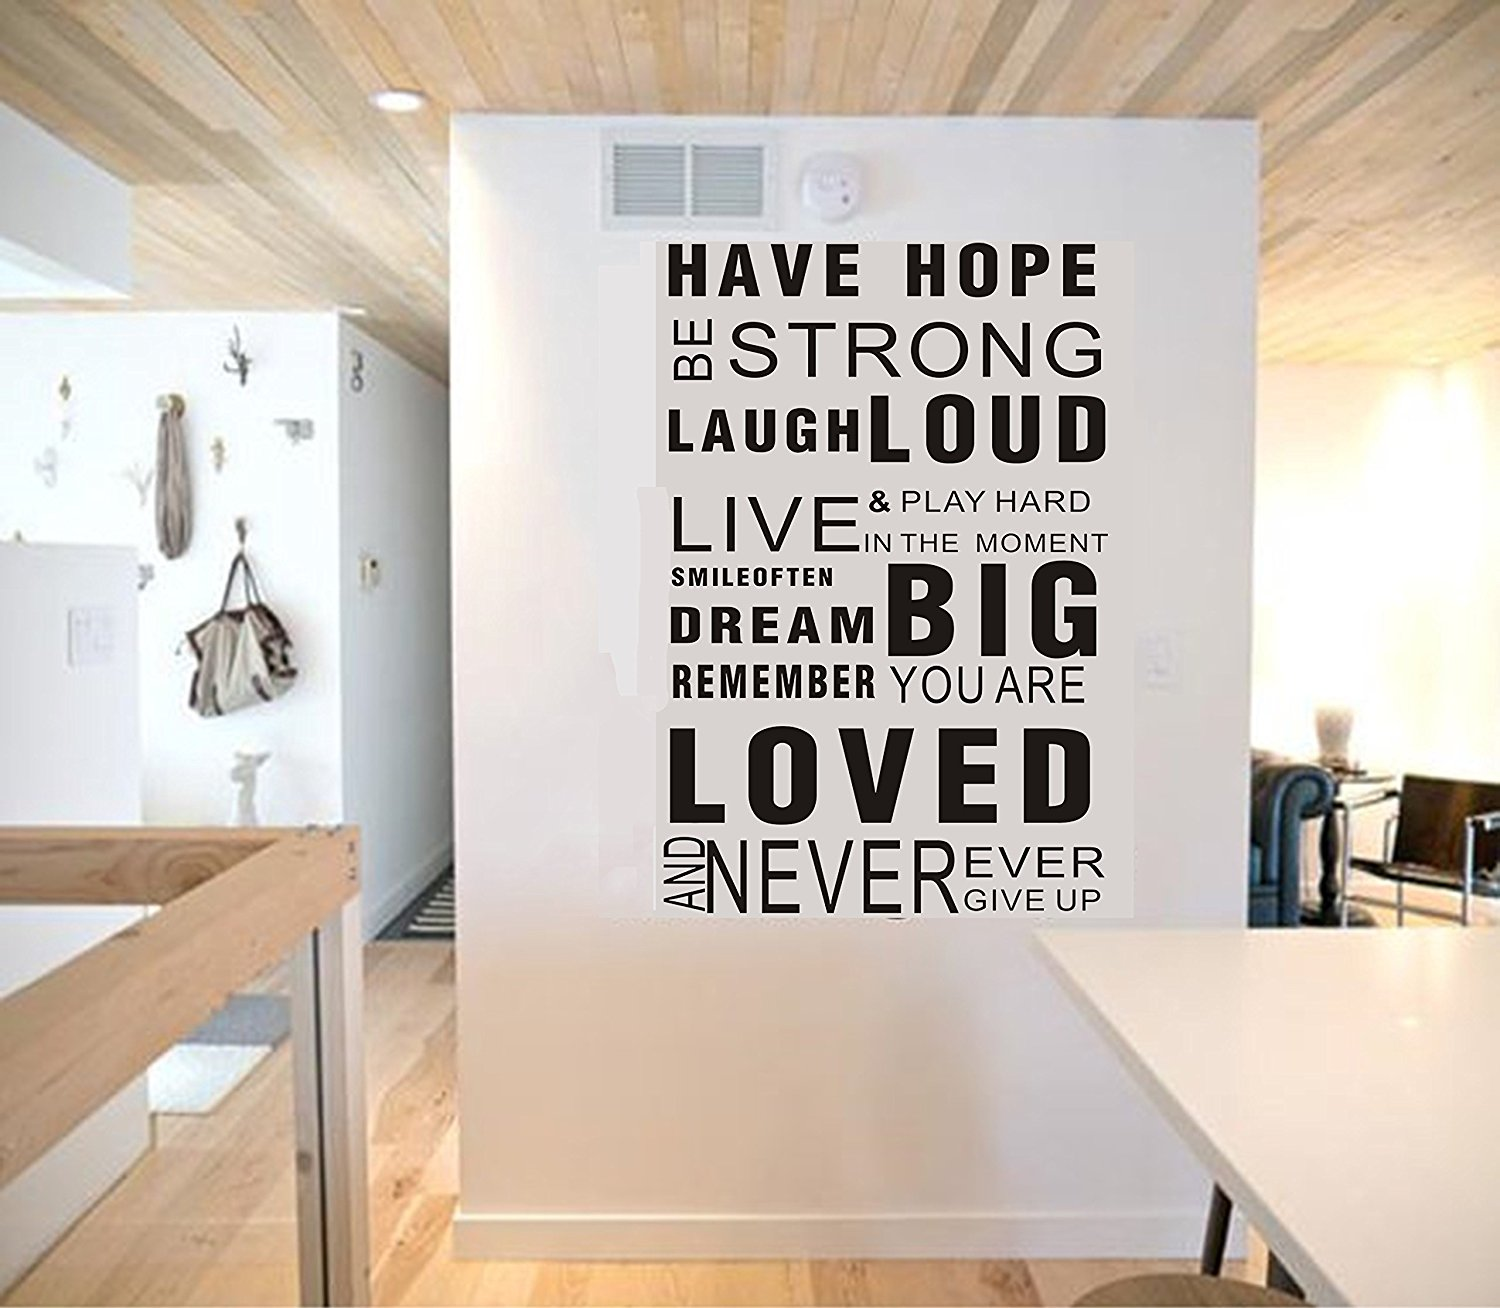 LUCKKYY HOPE Inspirational Wall Decals Quotes,Word Wall Sticker Quotes Family Inspirational Wall Art Vinyl Wall Mural Paint Decor Wall Decals Art Decoration (Black)